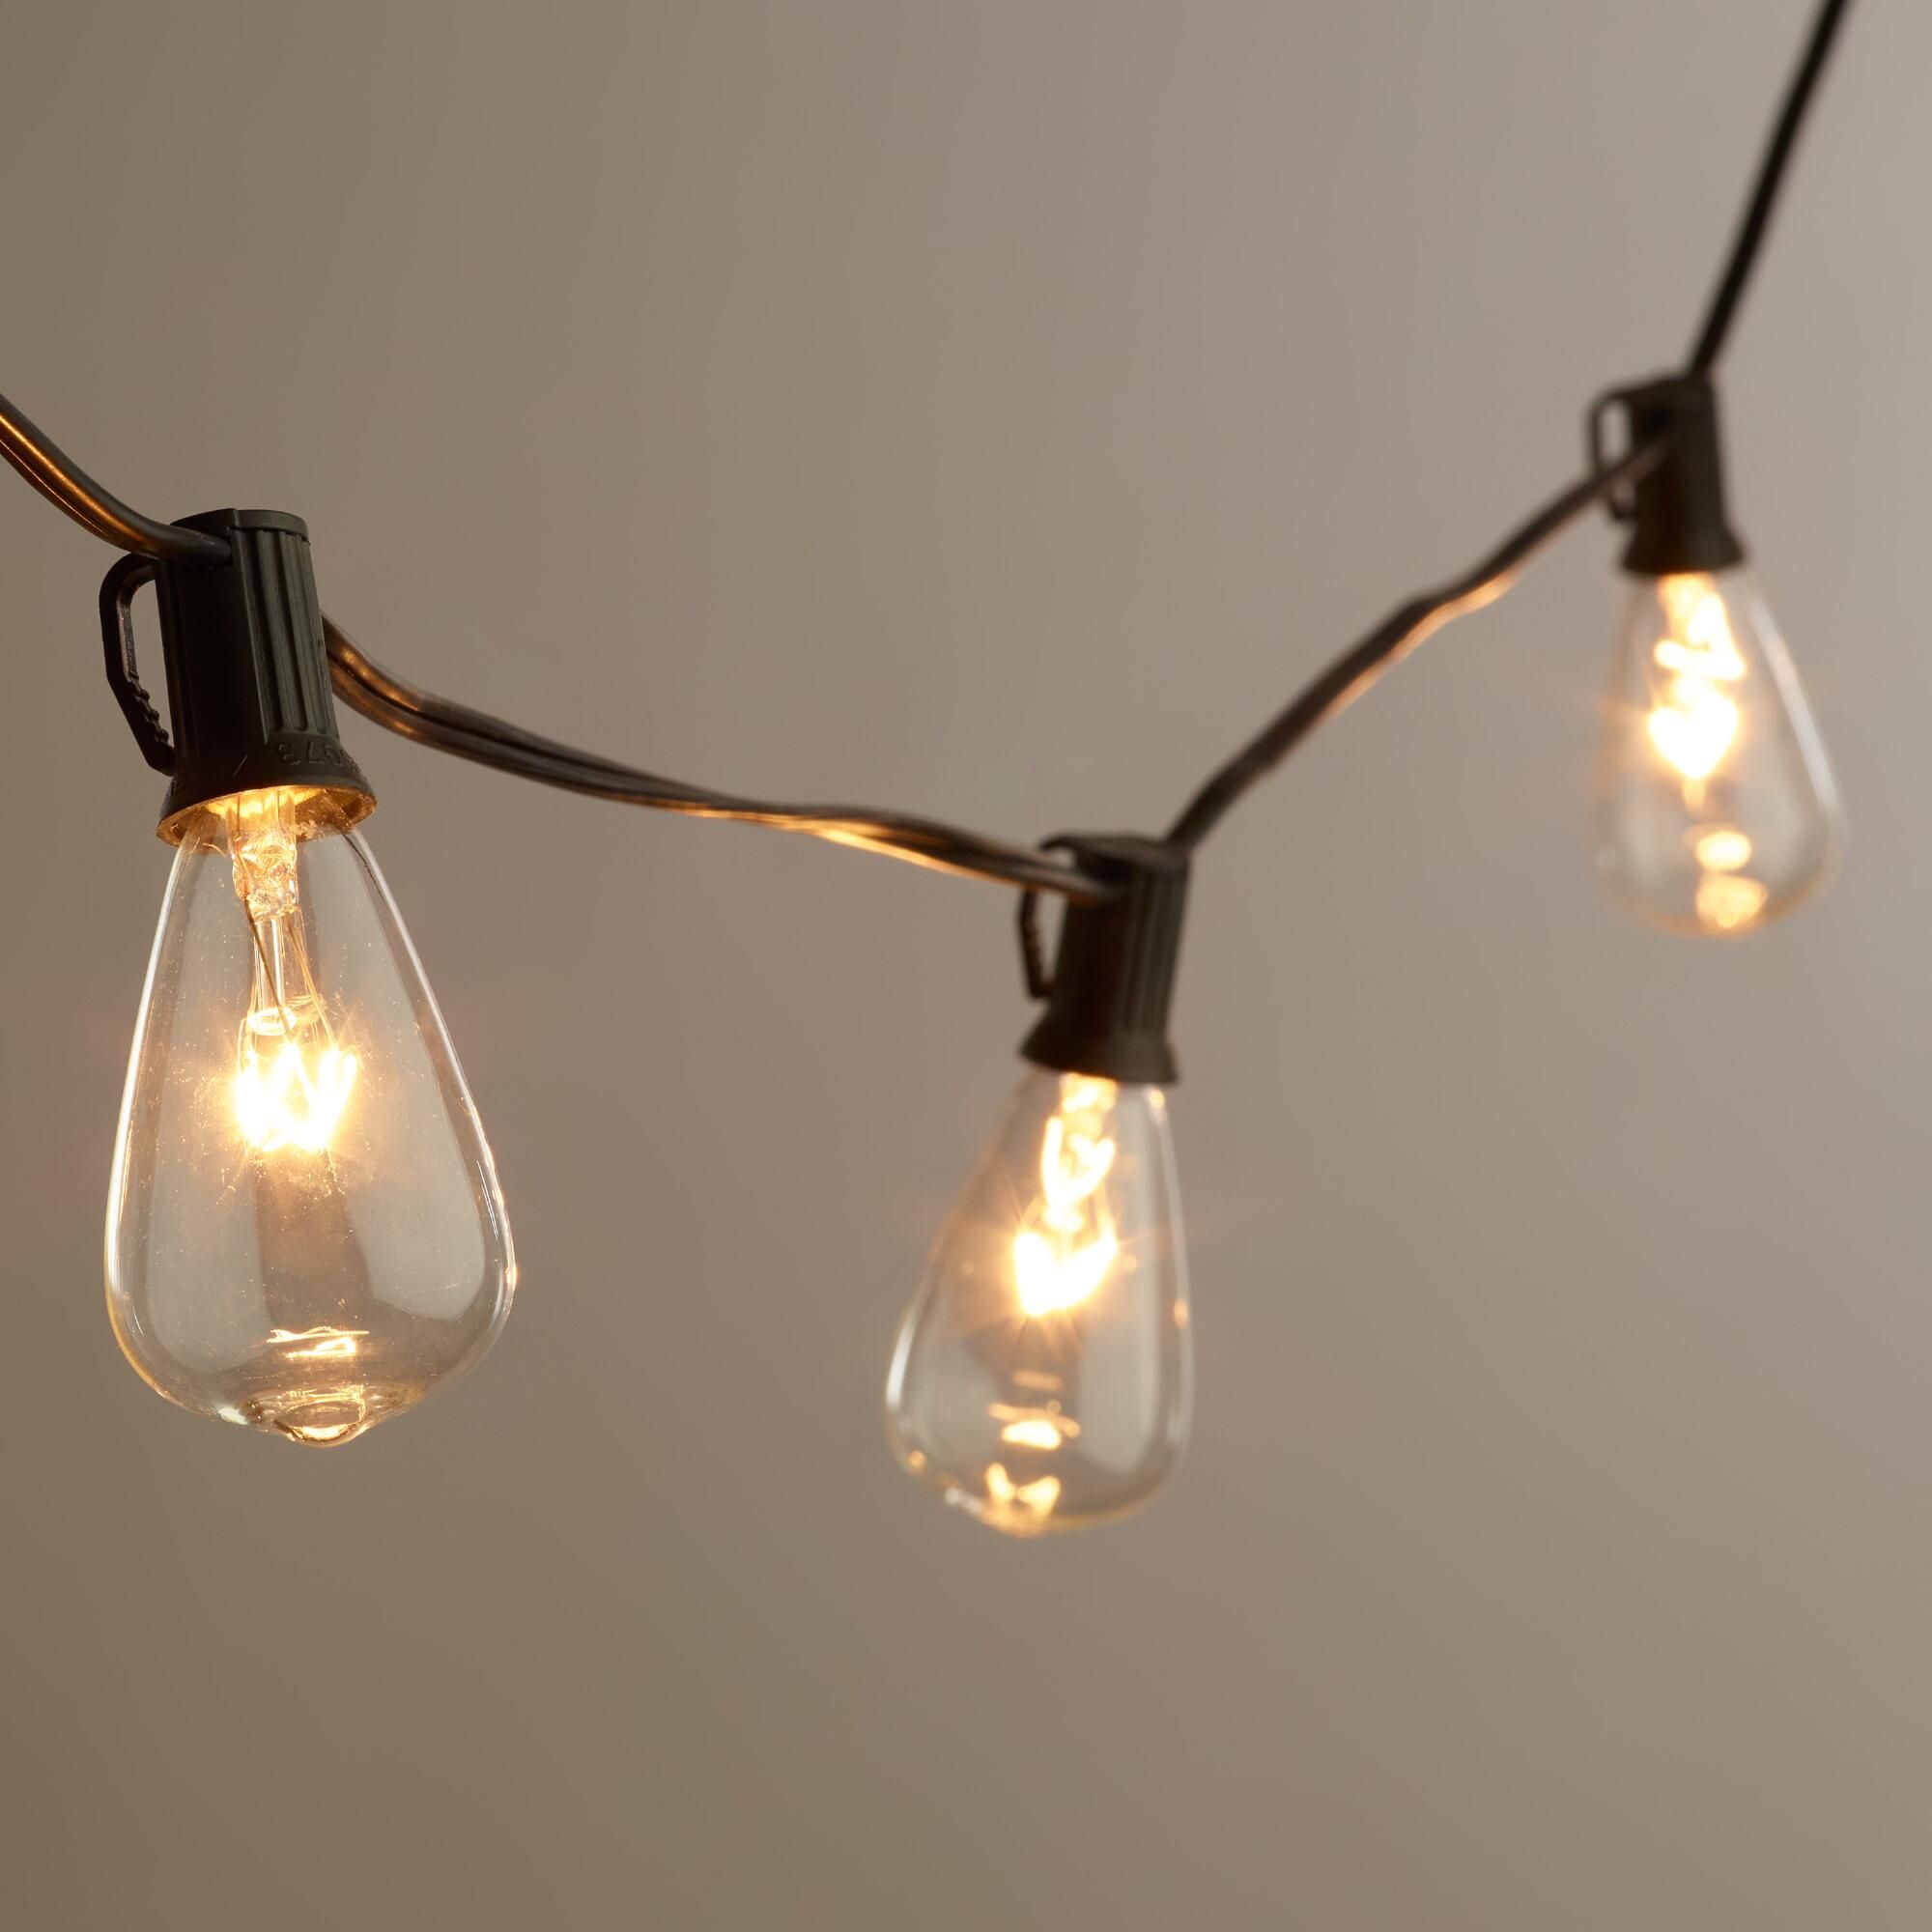 Replacement Bulbs For String Lights Glamorous Inspiredthe Vintage Light Bulbs Inventedthomas Edison Our Decorating Inspiration